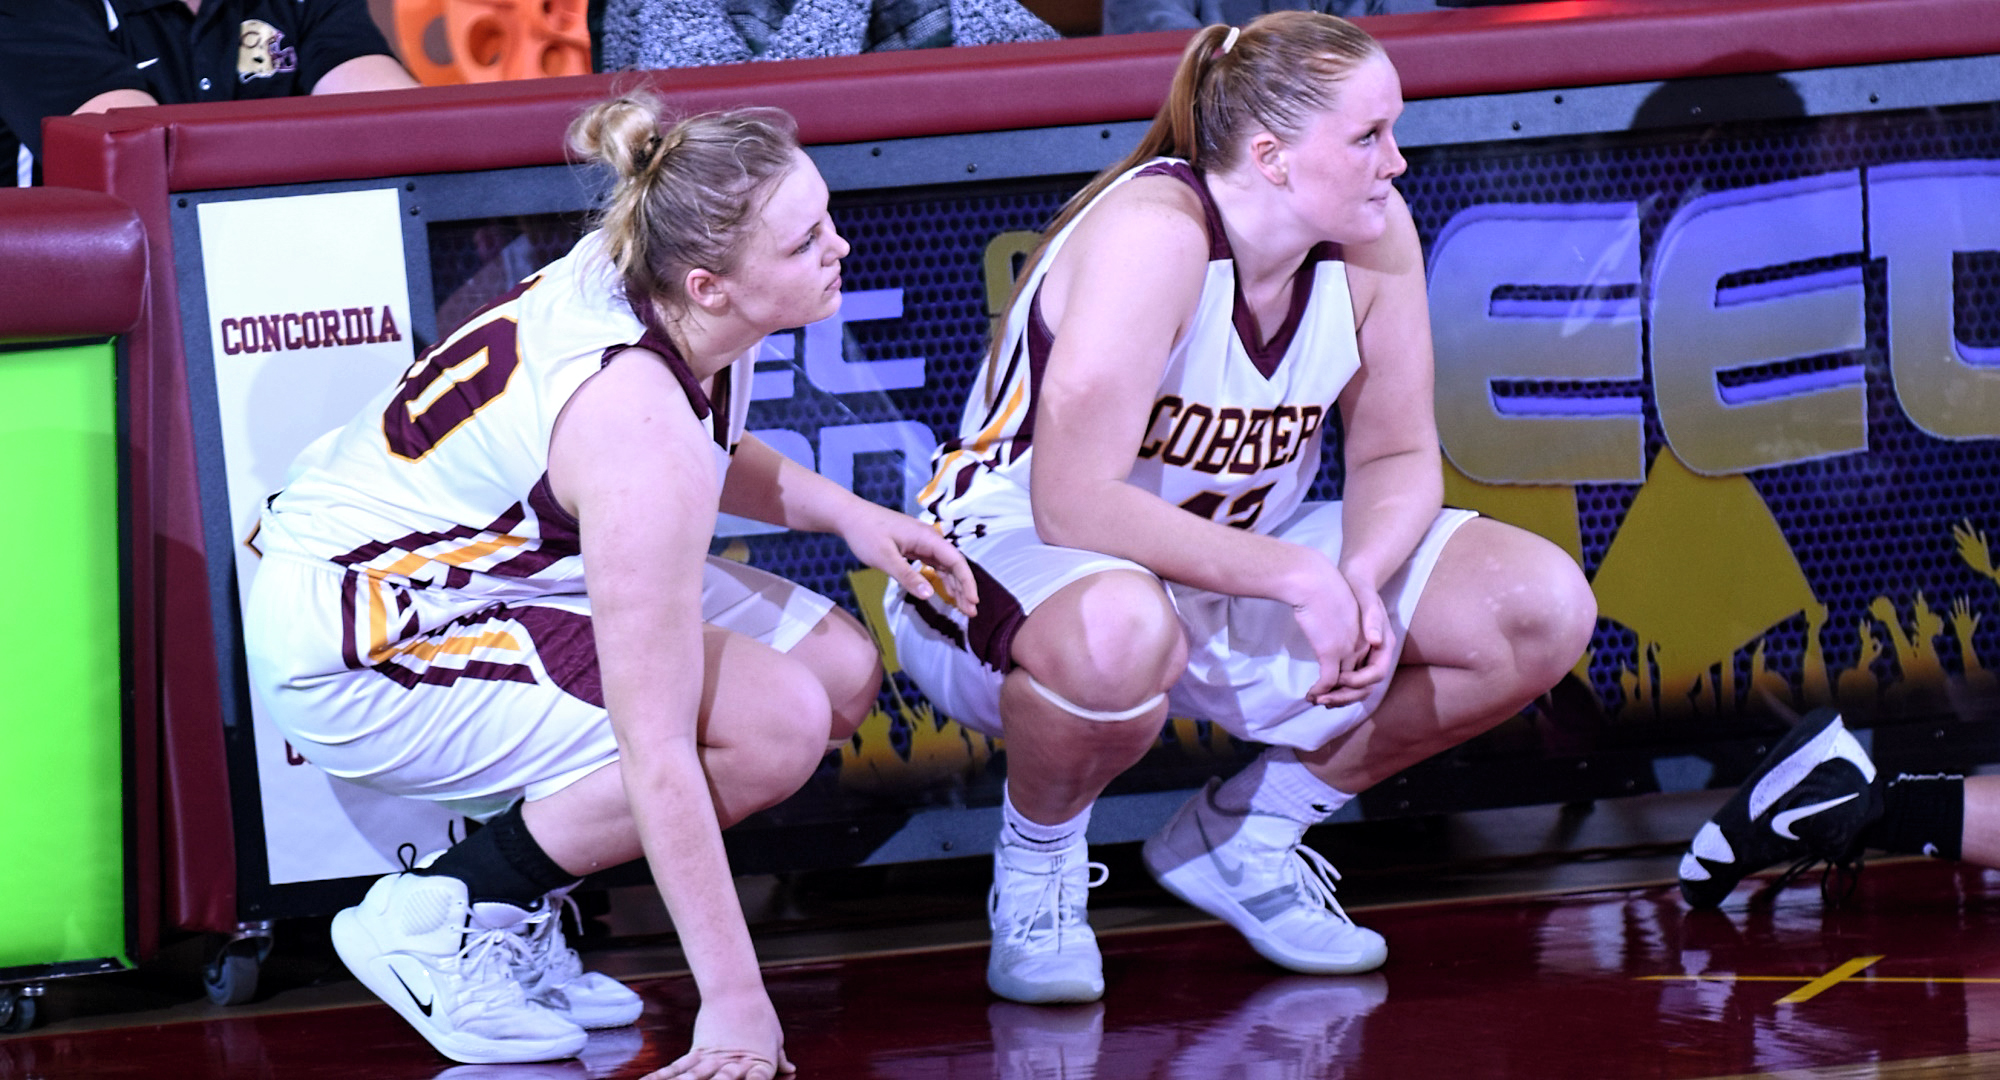 Kirstin Simmons (R) and Mira Ellefson combined for 25 points and helped the Cobbers outrebound Hamline 39-25 in their conference-opening win.